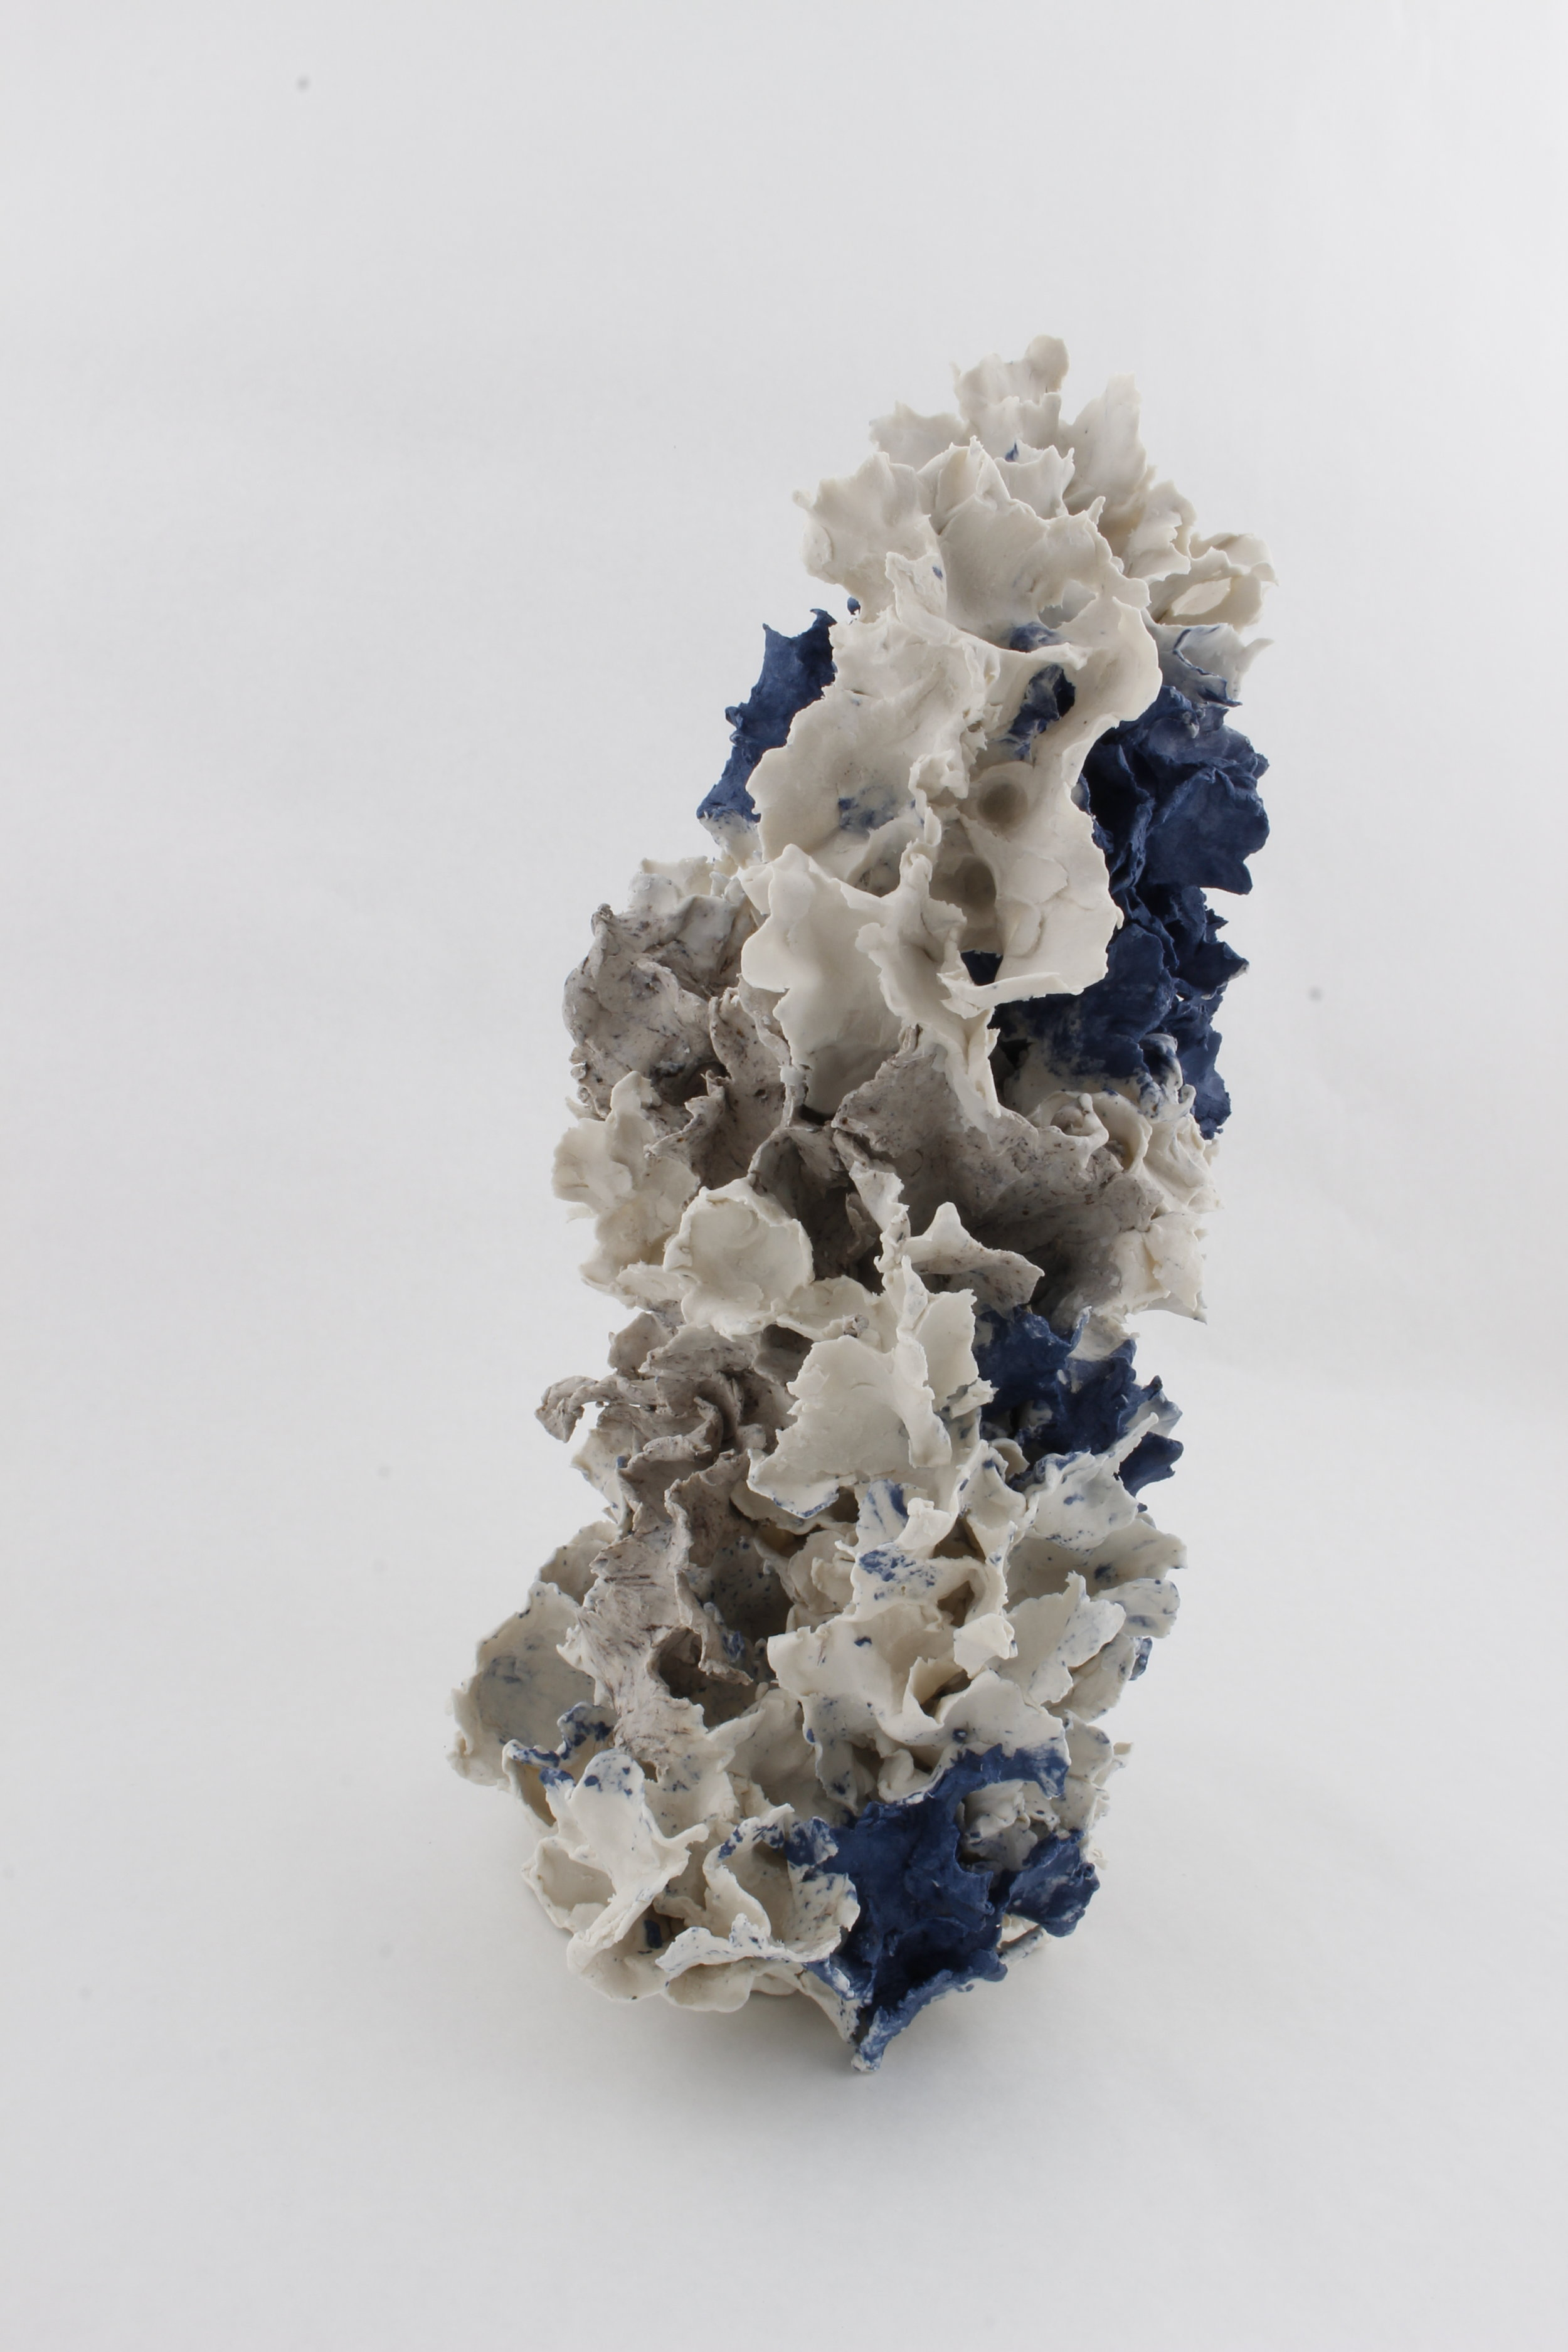 S imultaneous Growth , 2018. Paper clay, fire to cone 6, electric klin, 8 x 17 x 8 inch © Renqian Yang, courtesy Fou Gallery